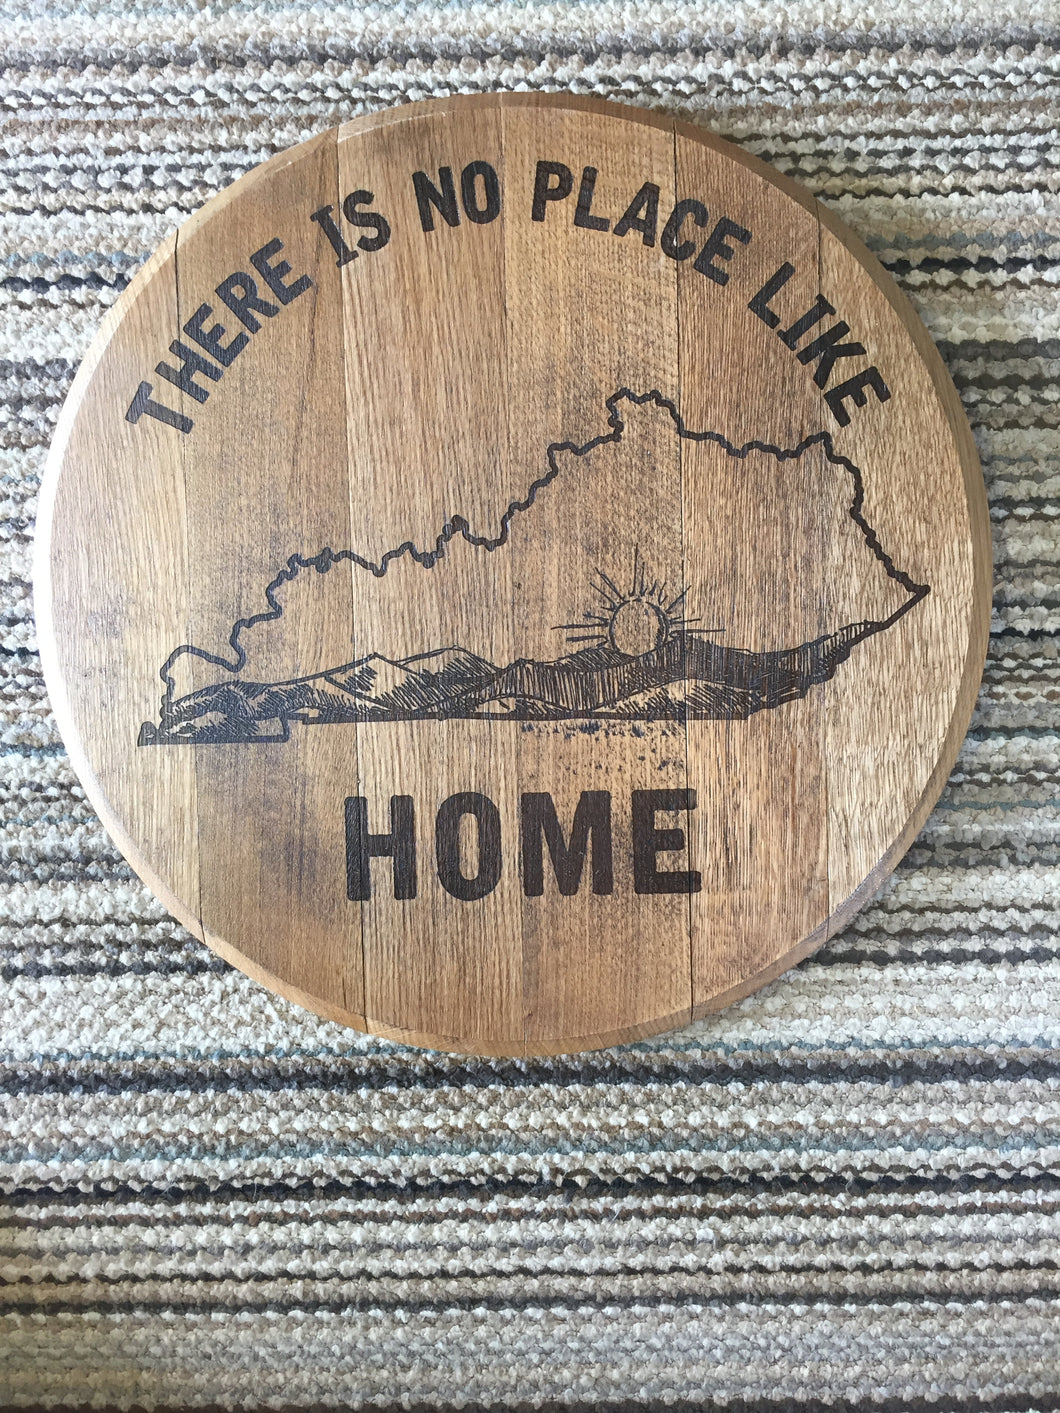 No Place Like Home Whiskey Barrel Top